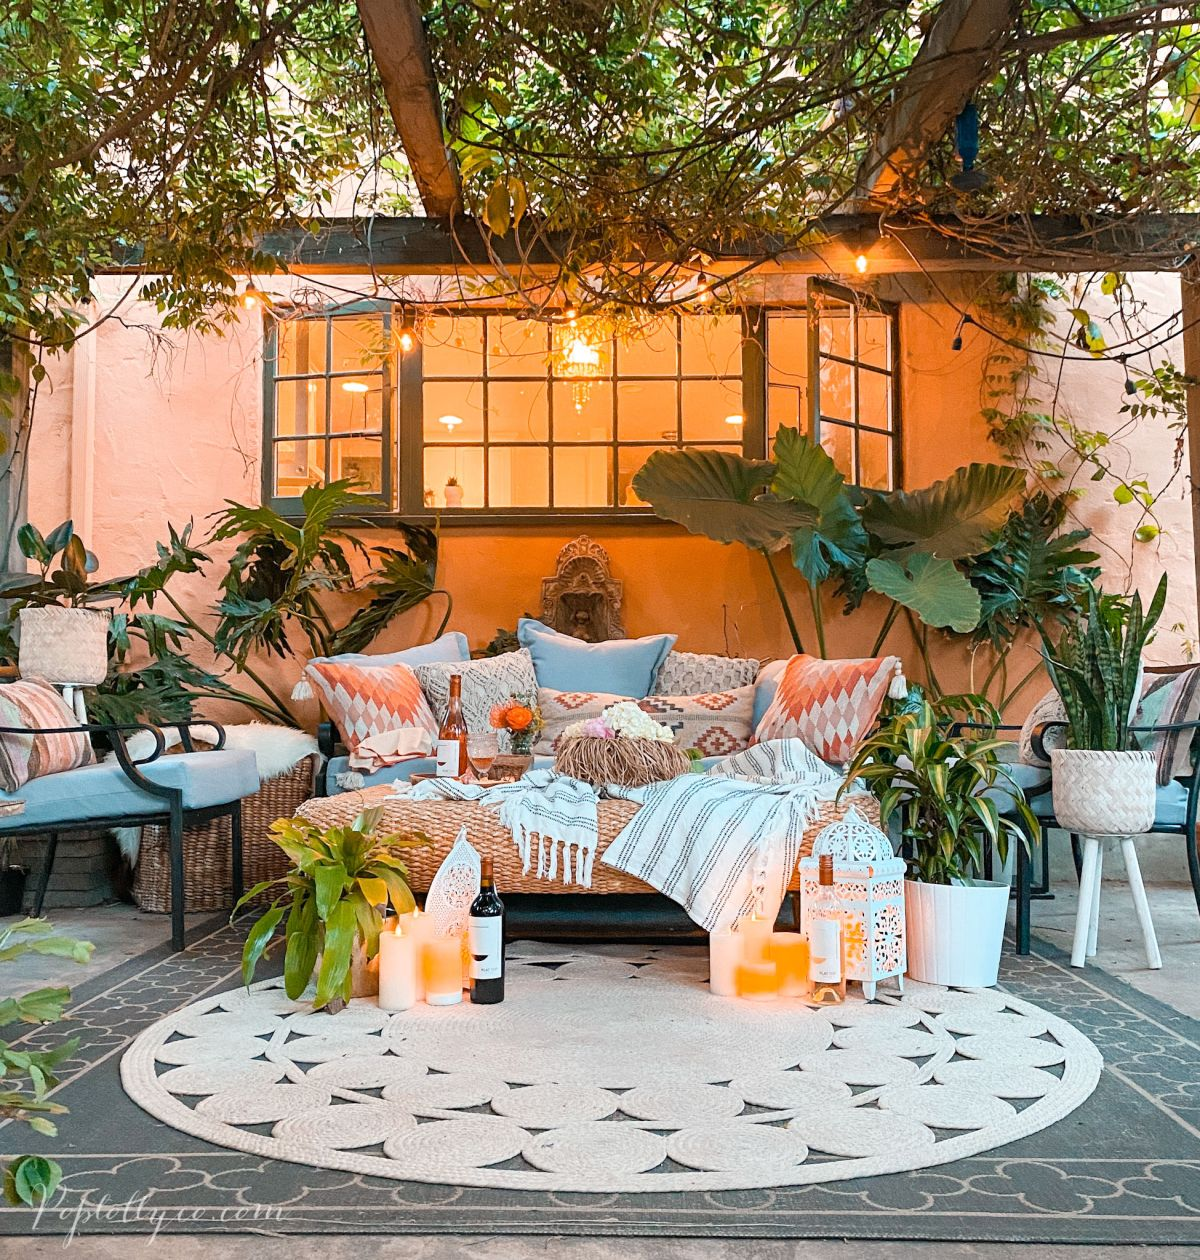 5 tips to create a magical patio | Poplolly co